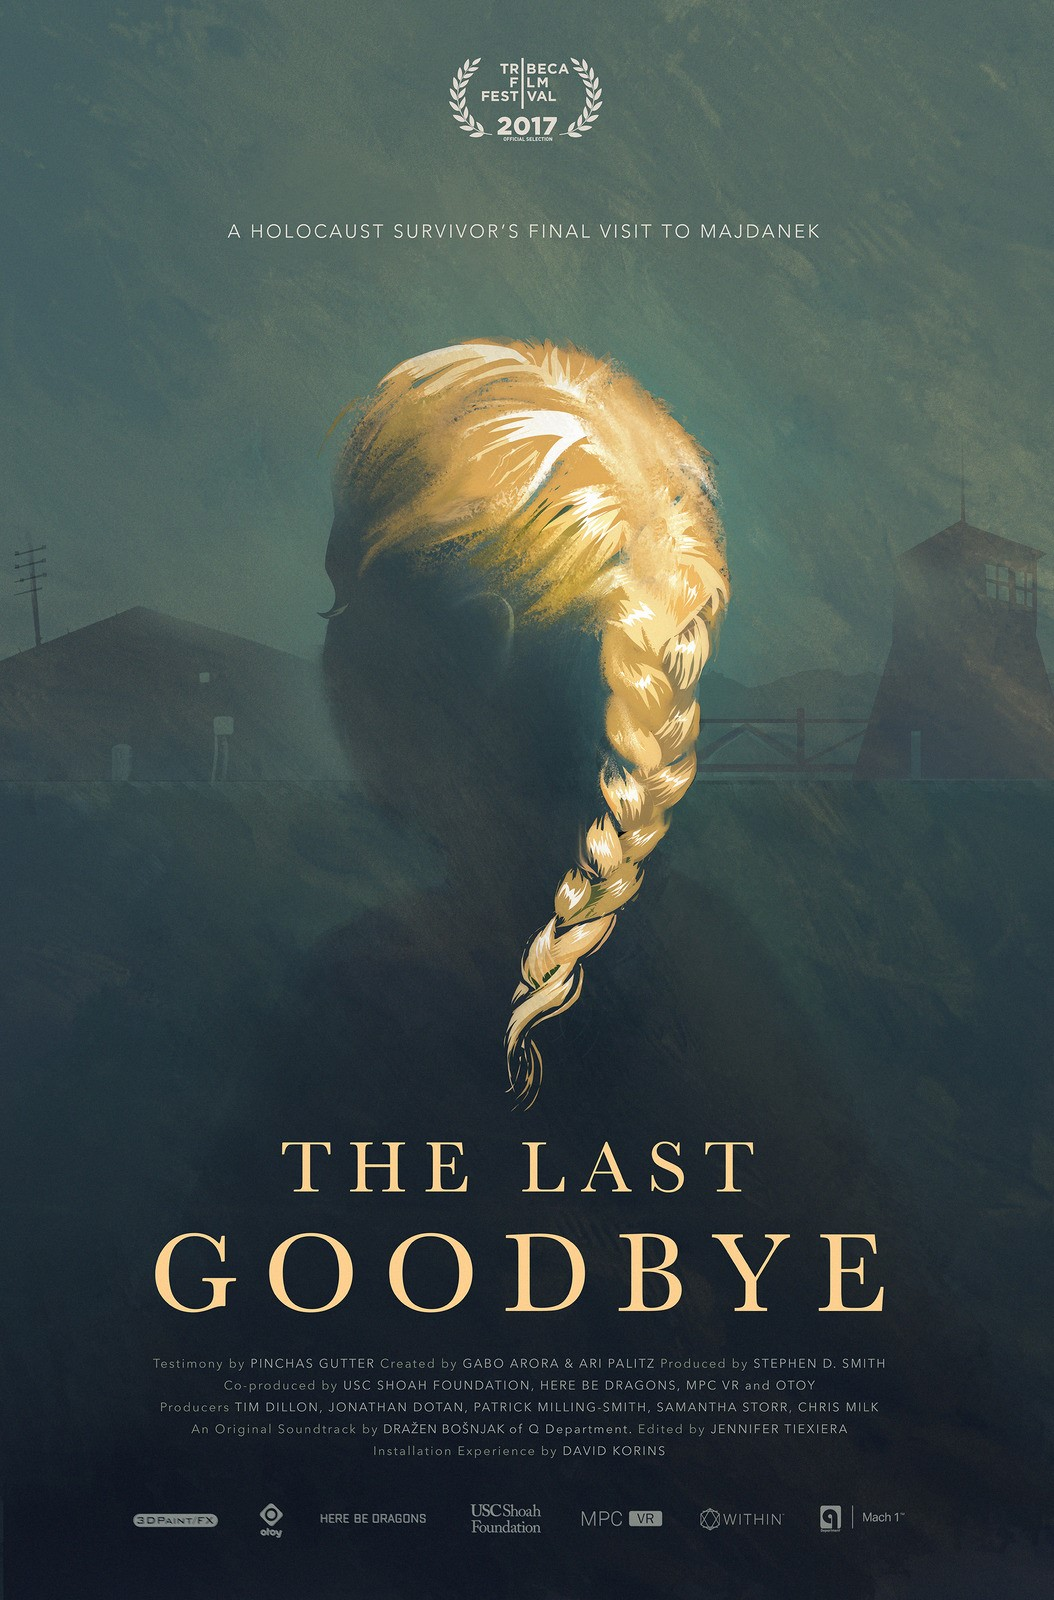 Remembering the Holocaust: The Last Goodbye film poster